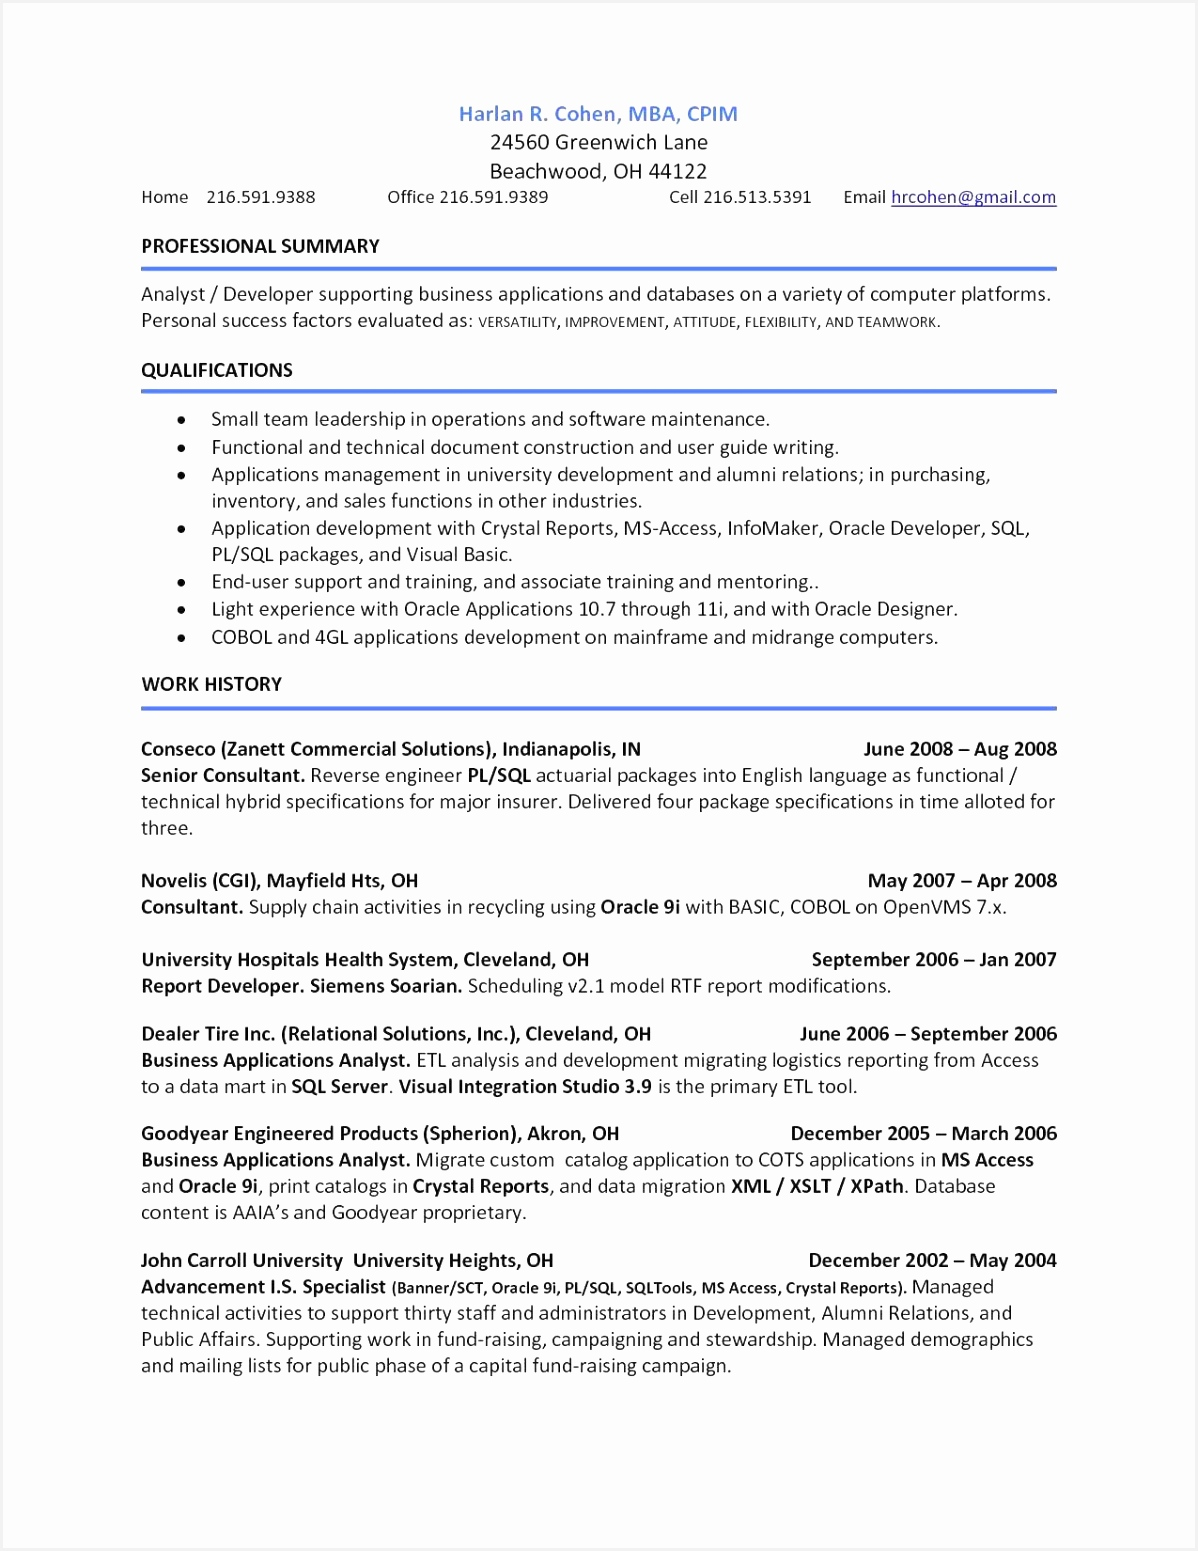 Basic Accounting Resume Sample Valid Dealer Resume Unique List Resume Skills New Resume Examples 0d 15511198tbjvj